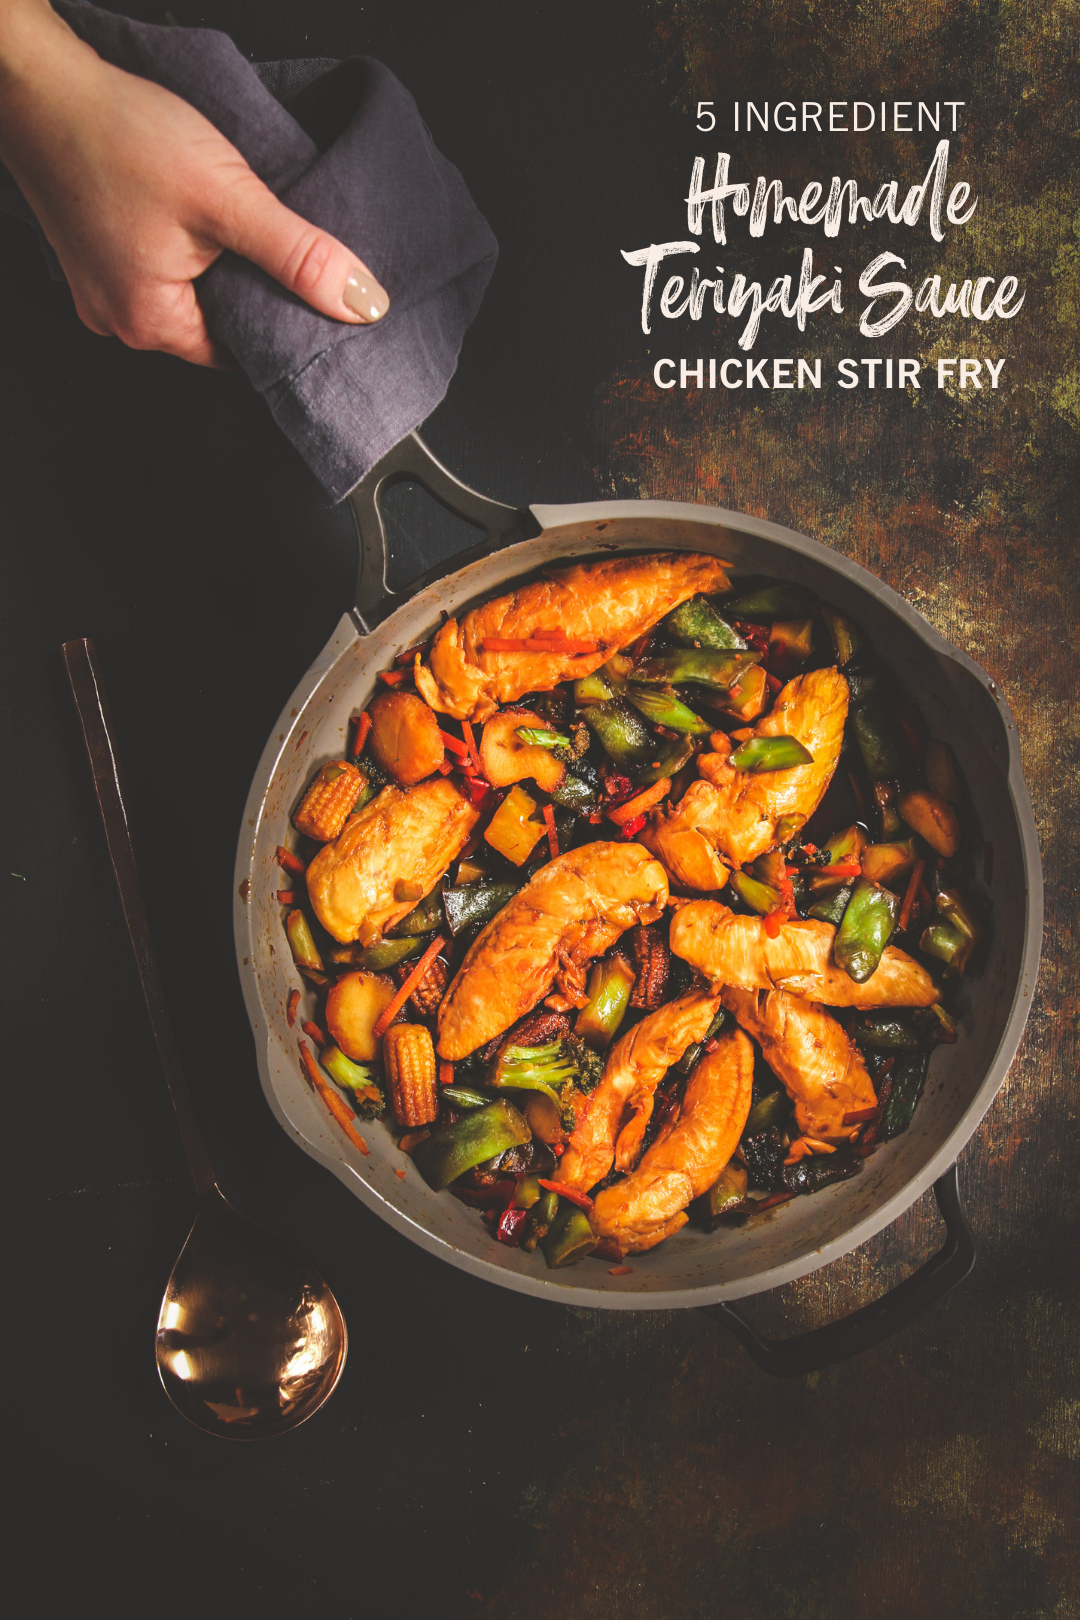 Homemade teriyaki sauce chicken stir fry in a skillet with hand